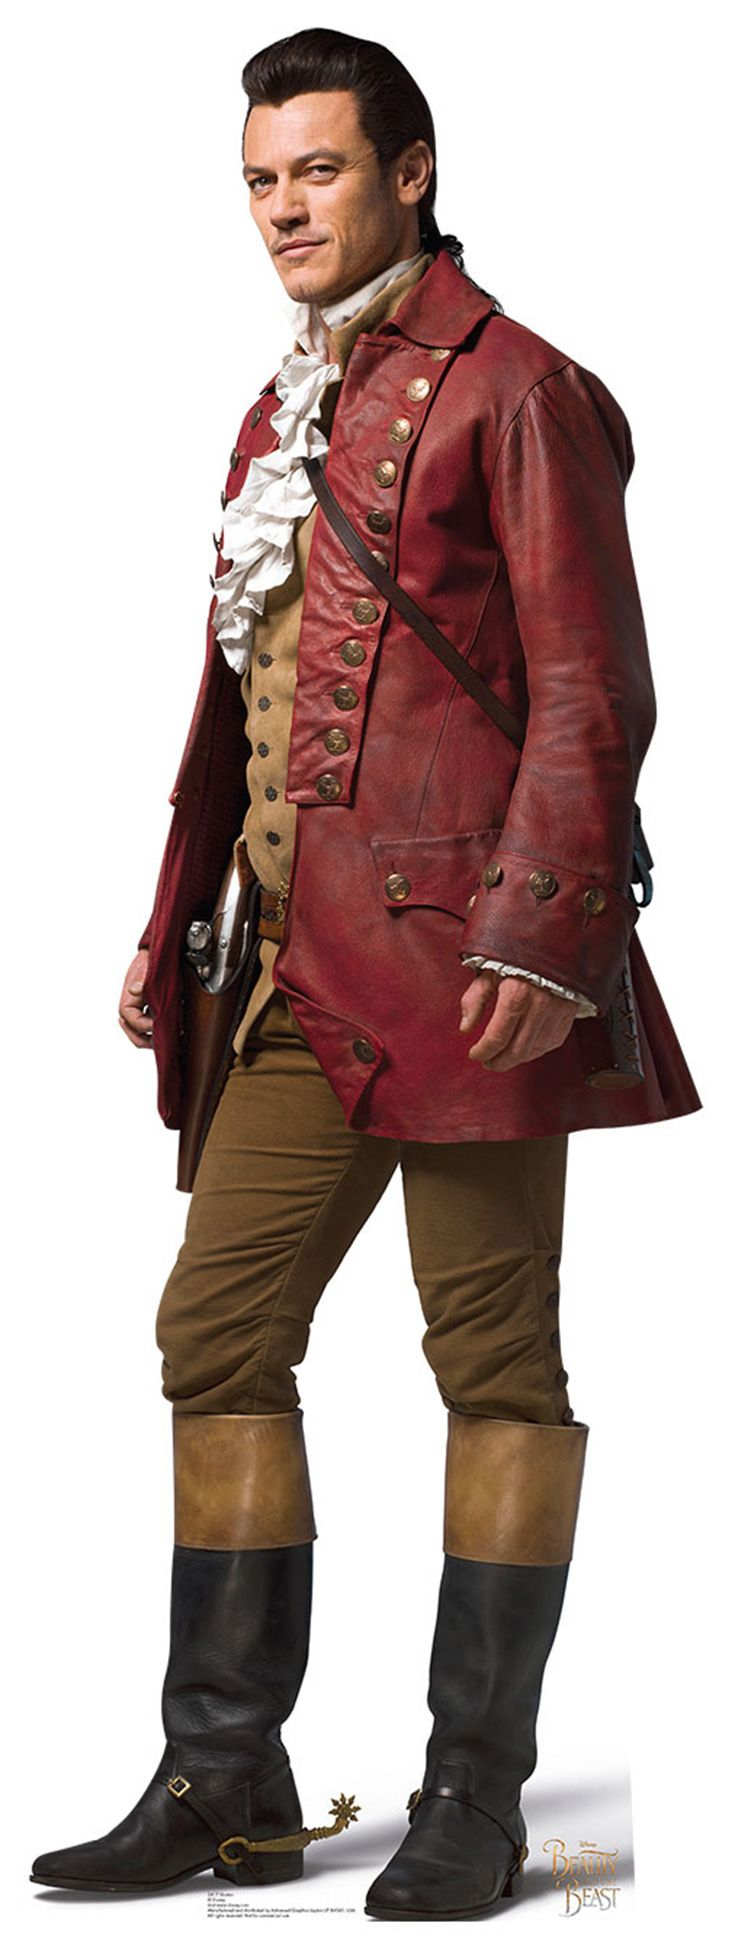 "GASTON Cardboard Cutout Standup / Standee from Disney's ""Beauty and the Beast (2017)"" 